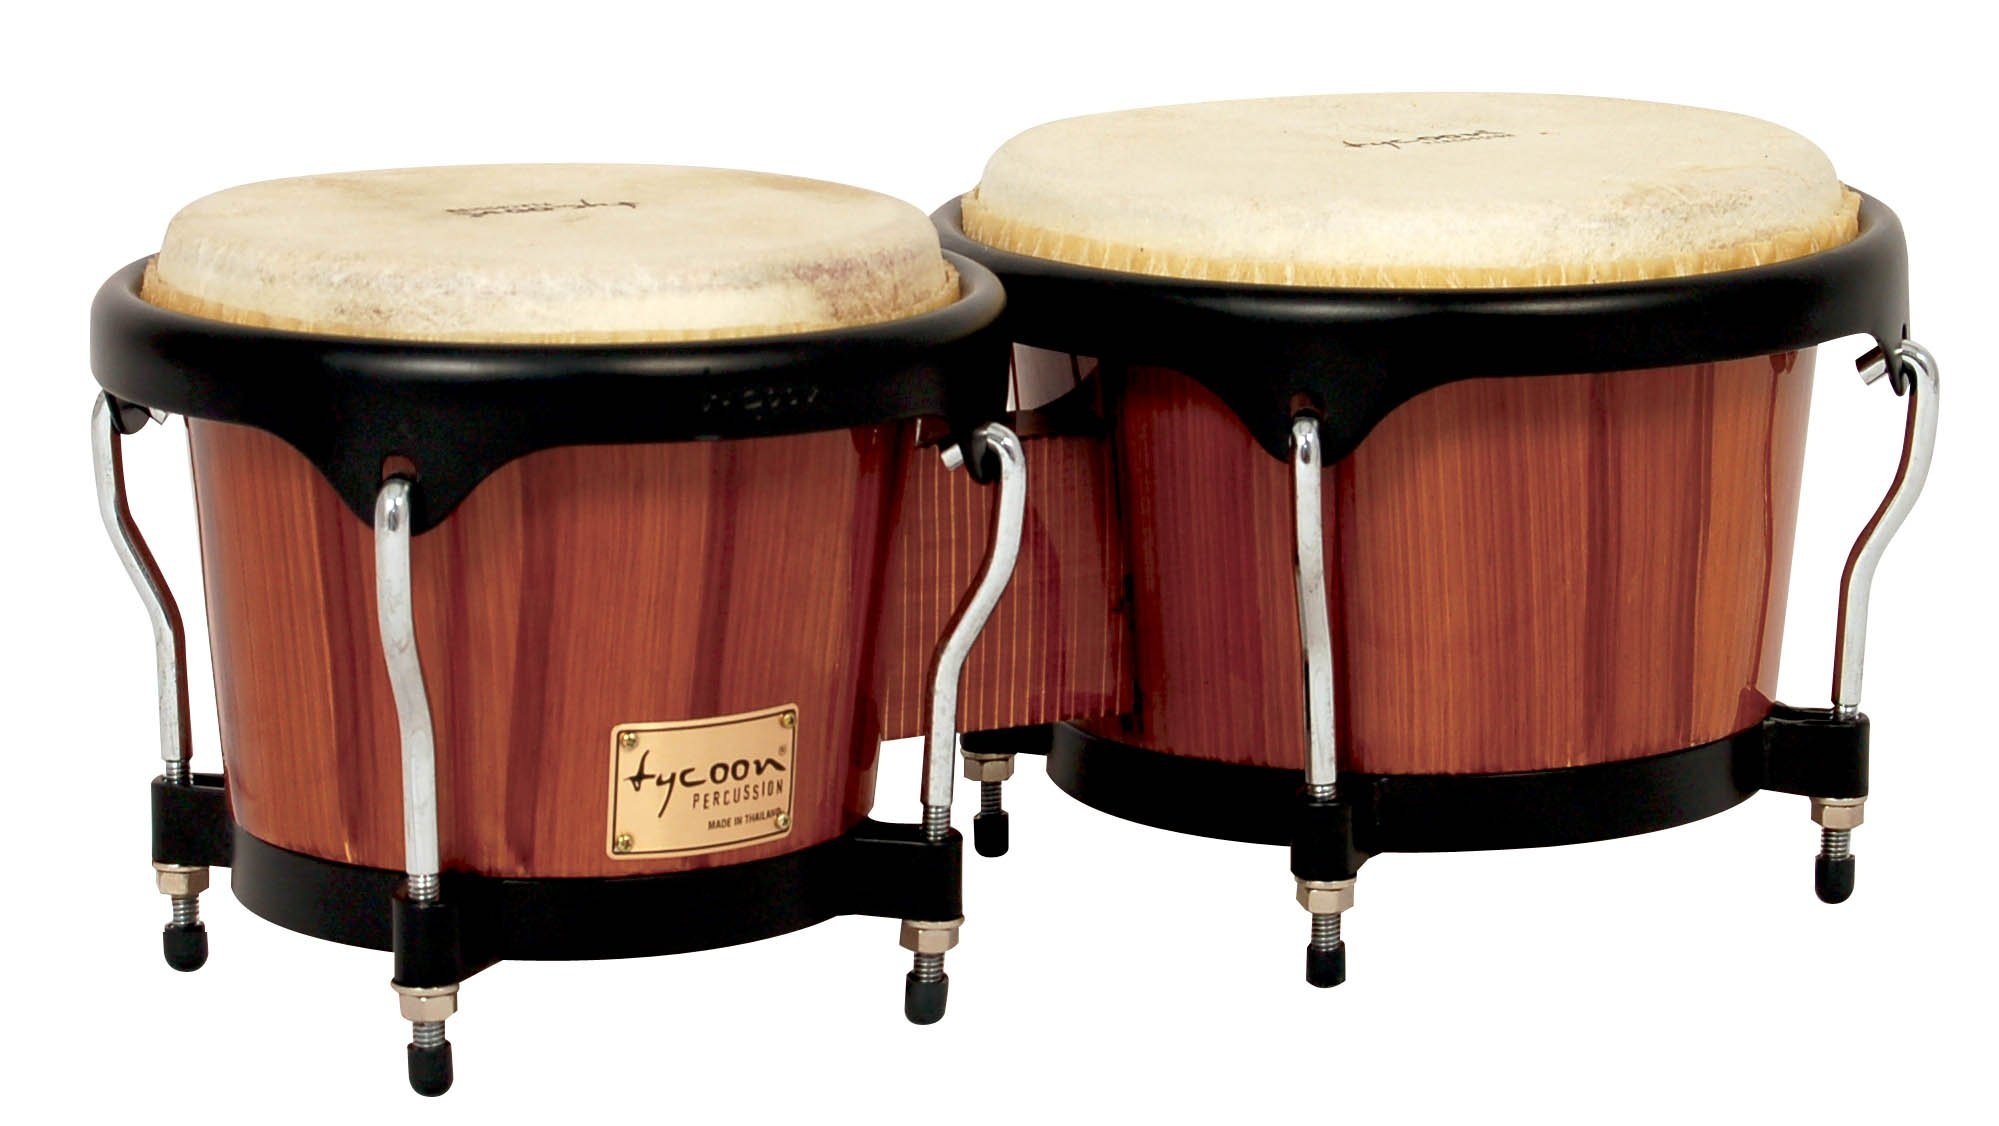 Tycoon Percussion 7 Inch & 8 1/2 Inch Artist Series Hand Painted Bongos - Brown Finish